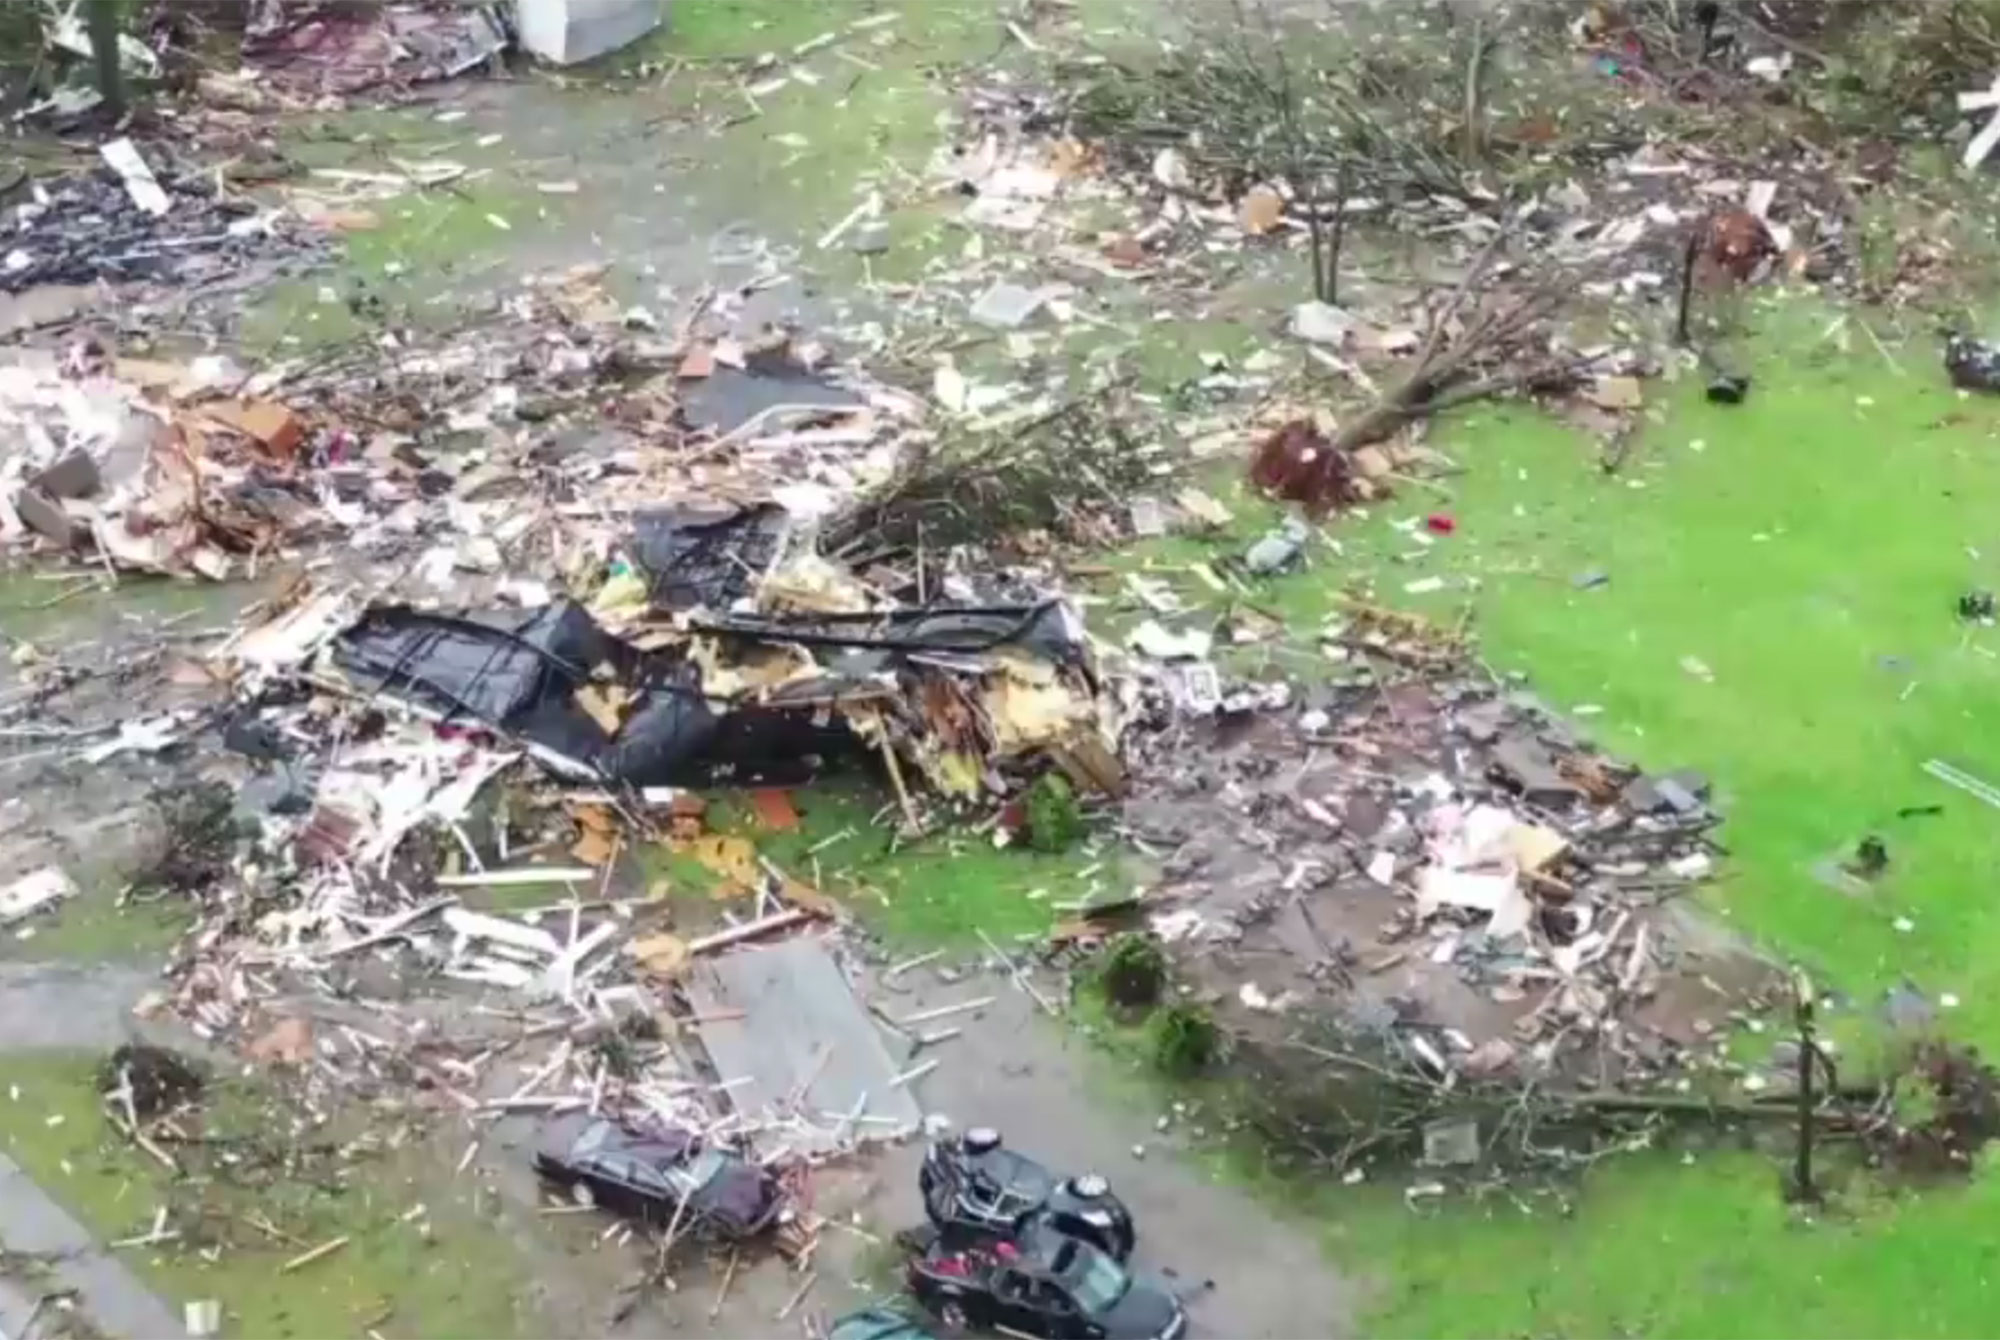 23 Dead After Powerful Tornado Rips Through Southeast Alabama: 'The Devastation Is Incredible'